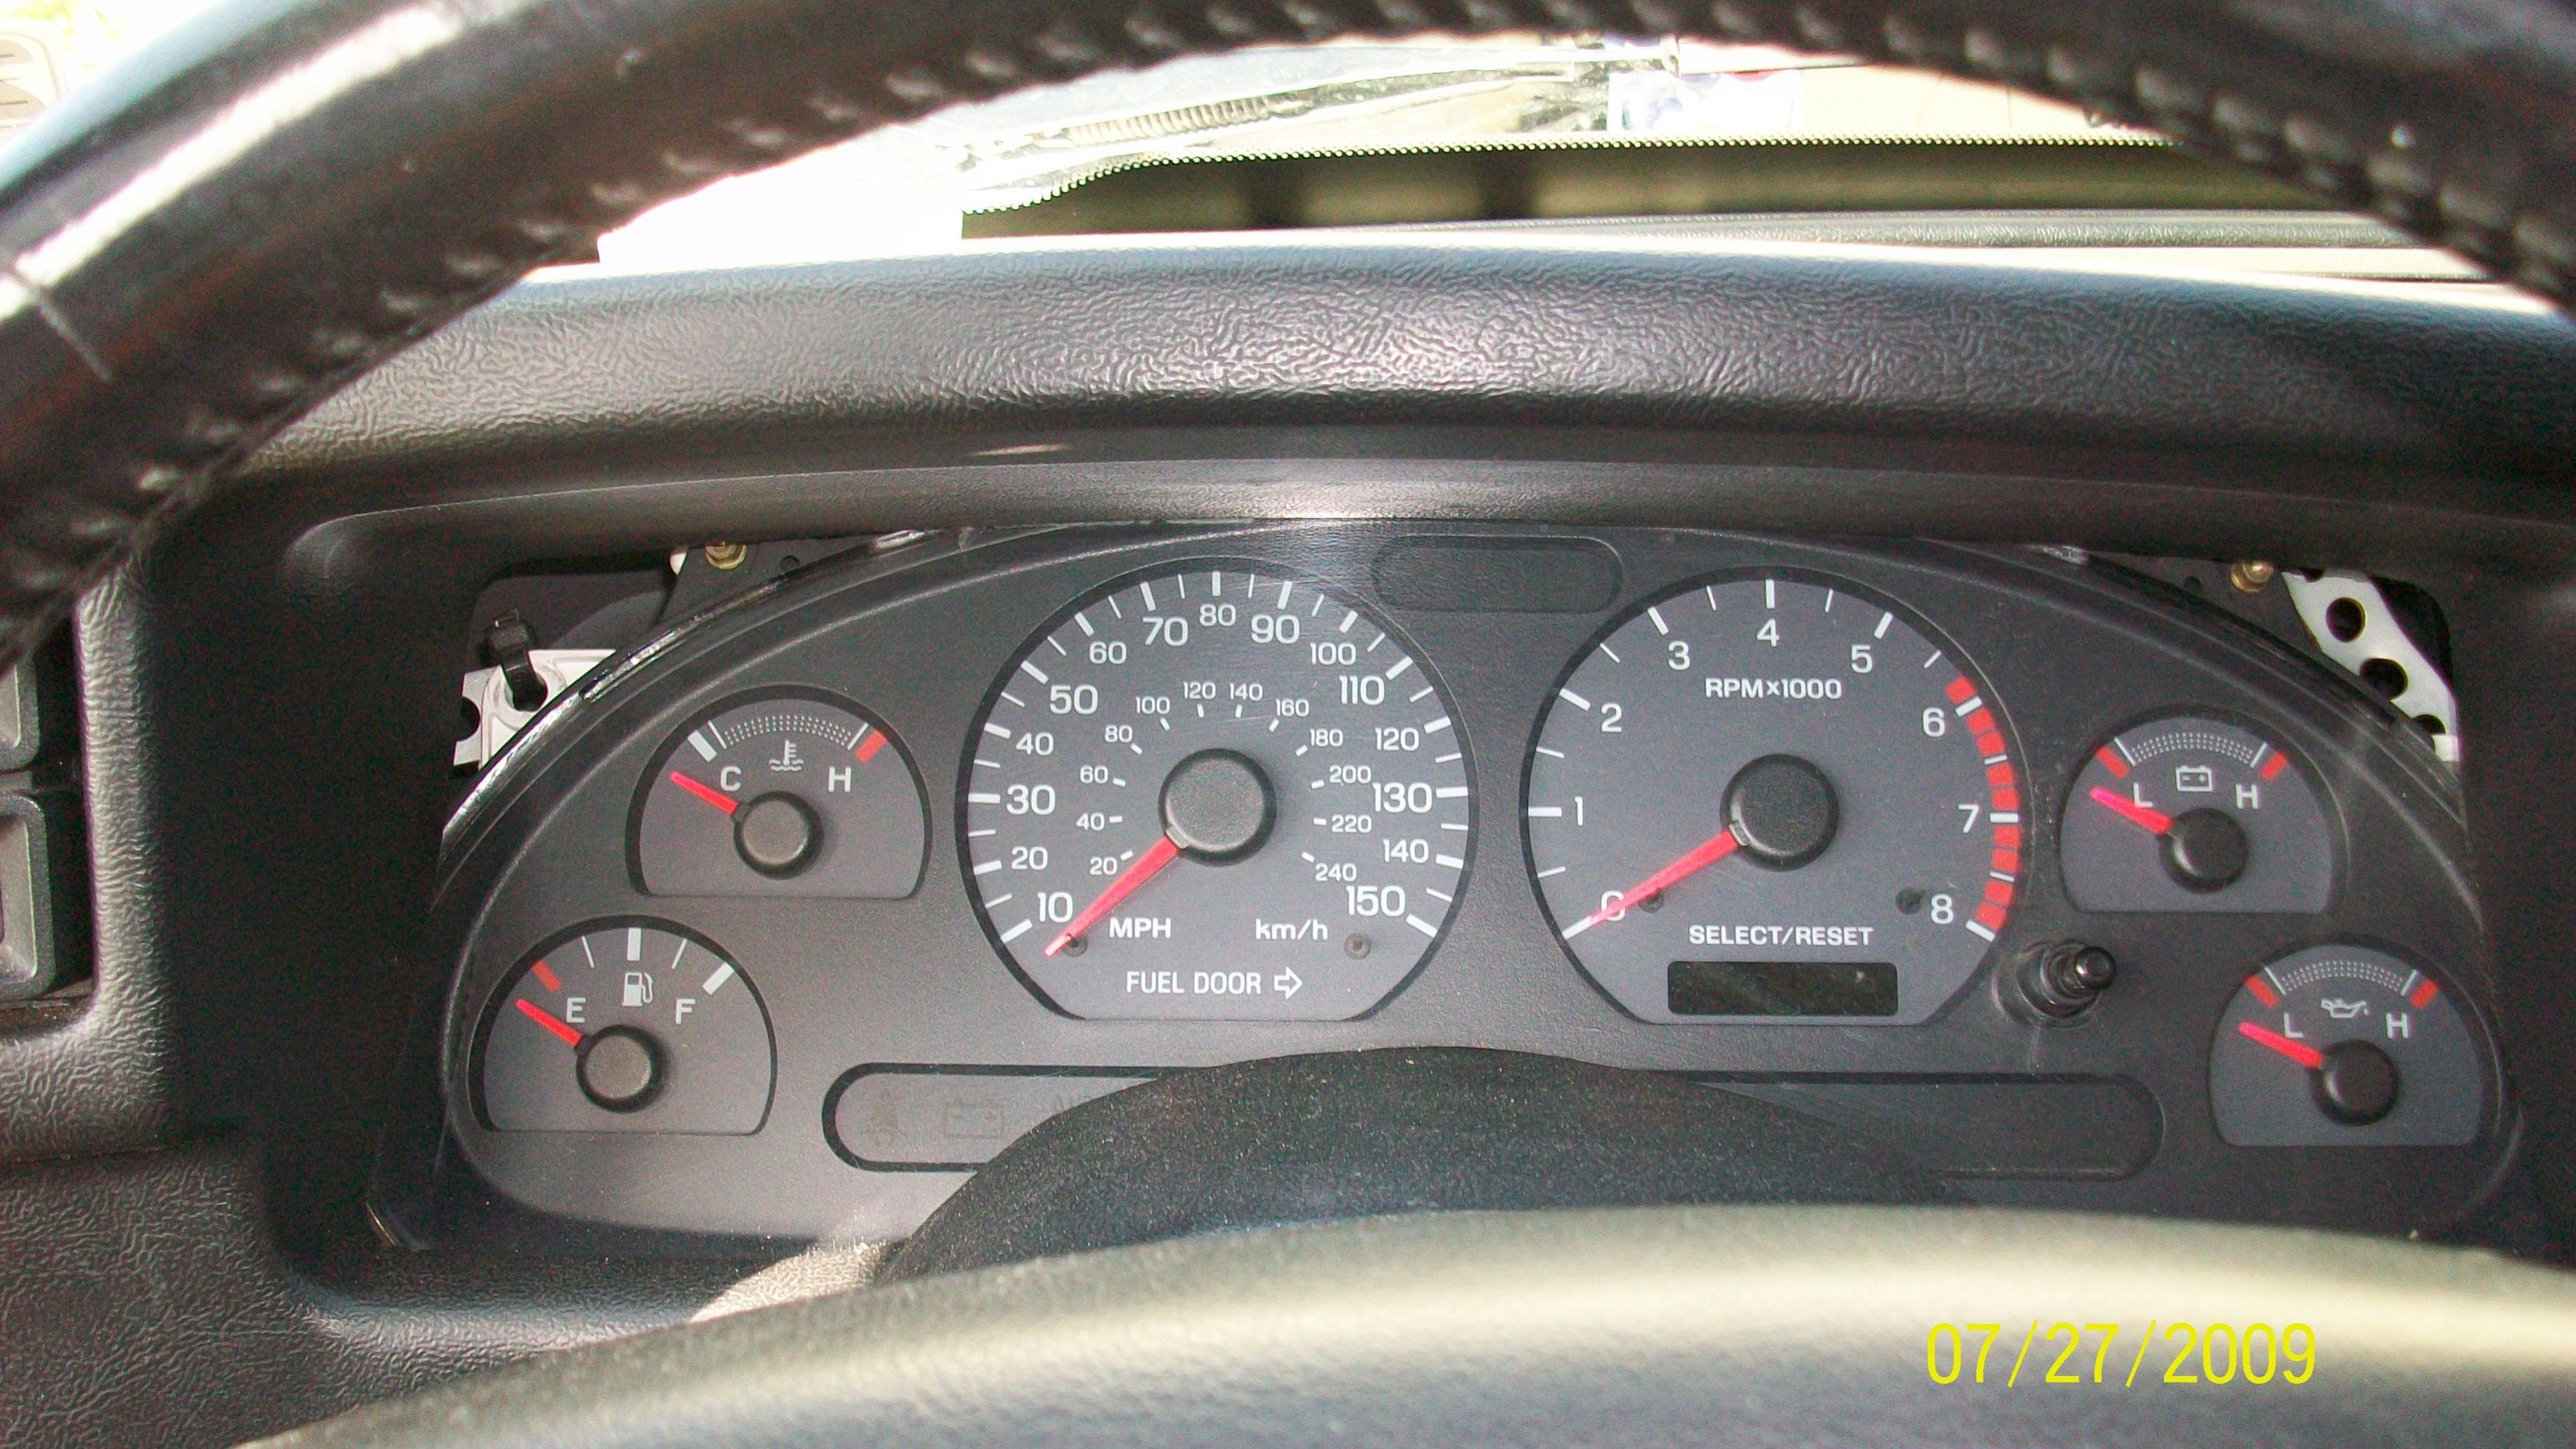 4 6 In Fox Body 93 Gt 2002 Dash Jpg